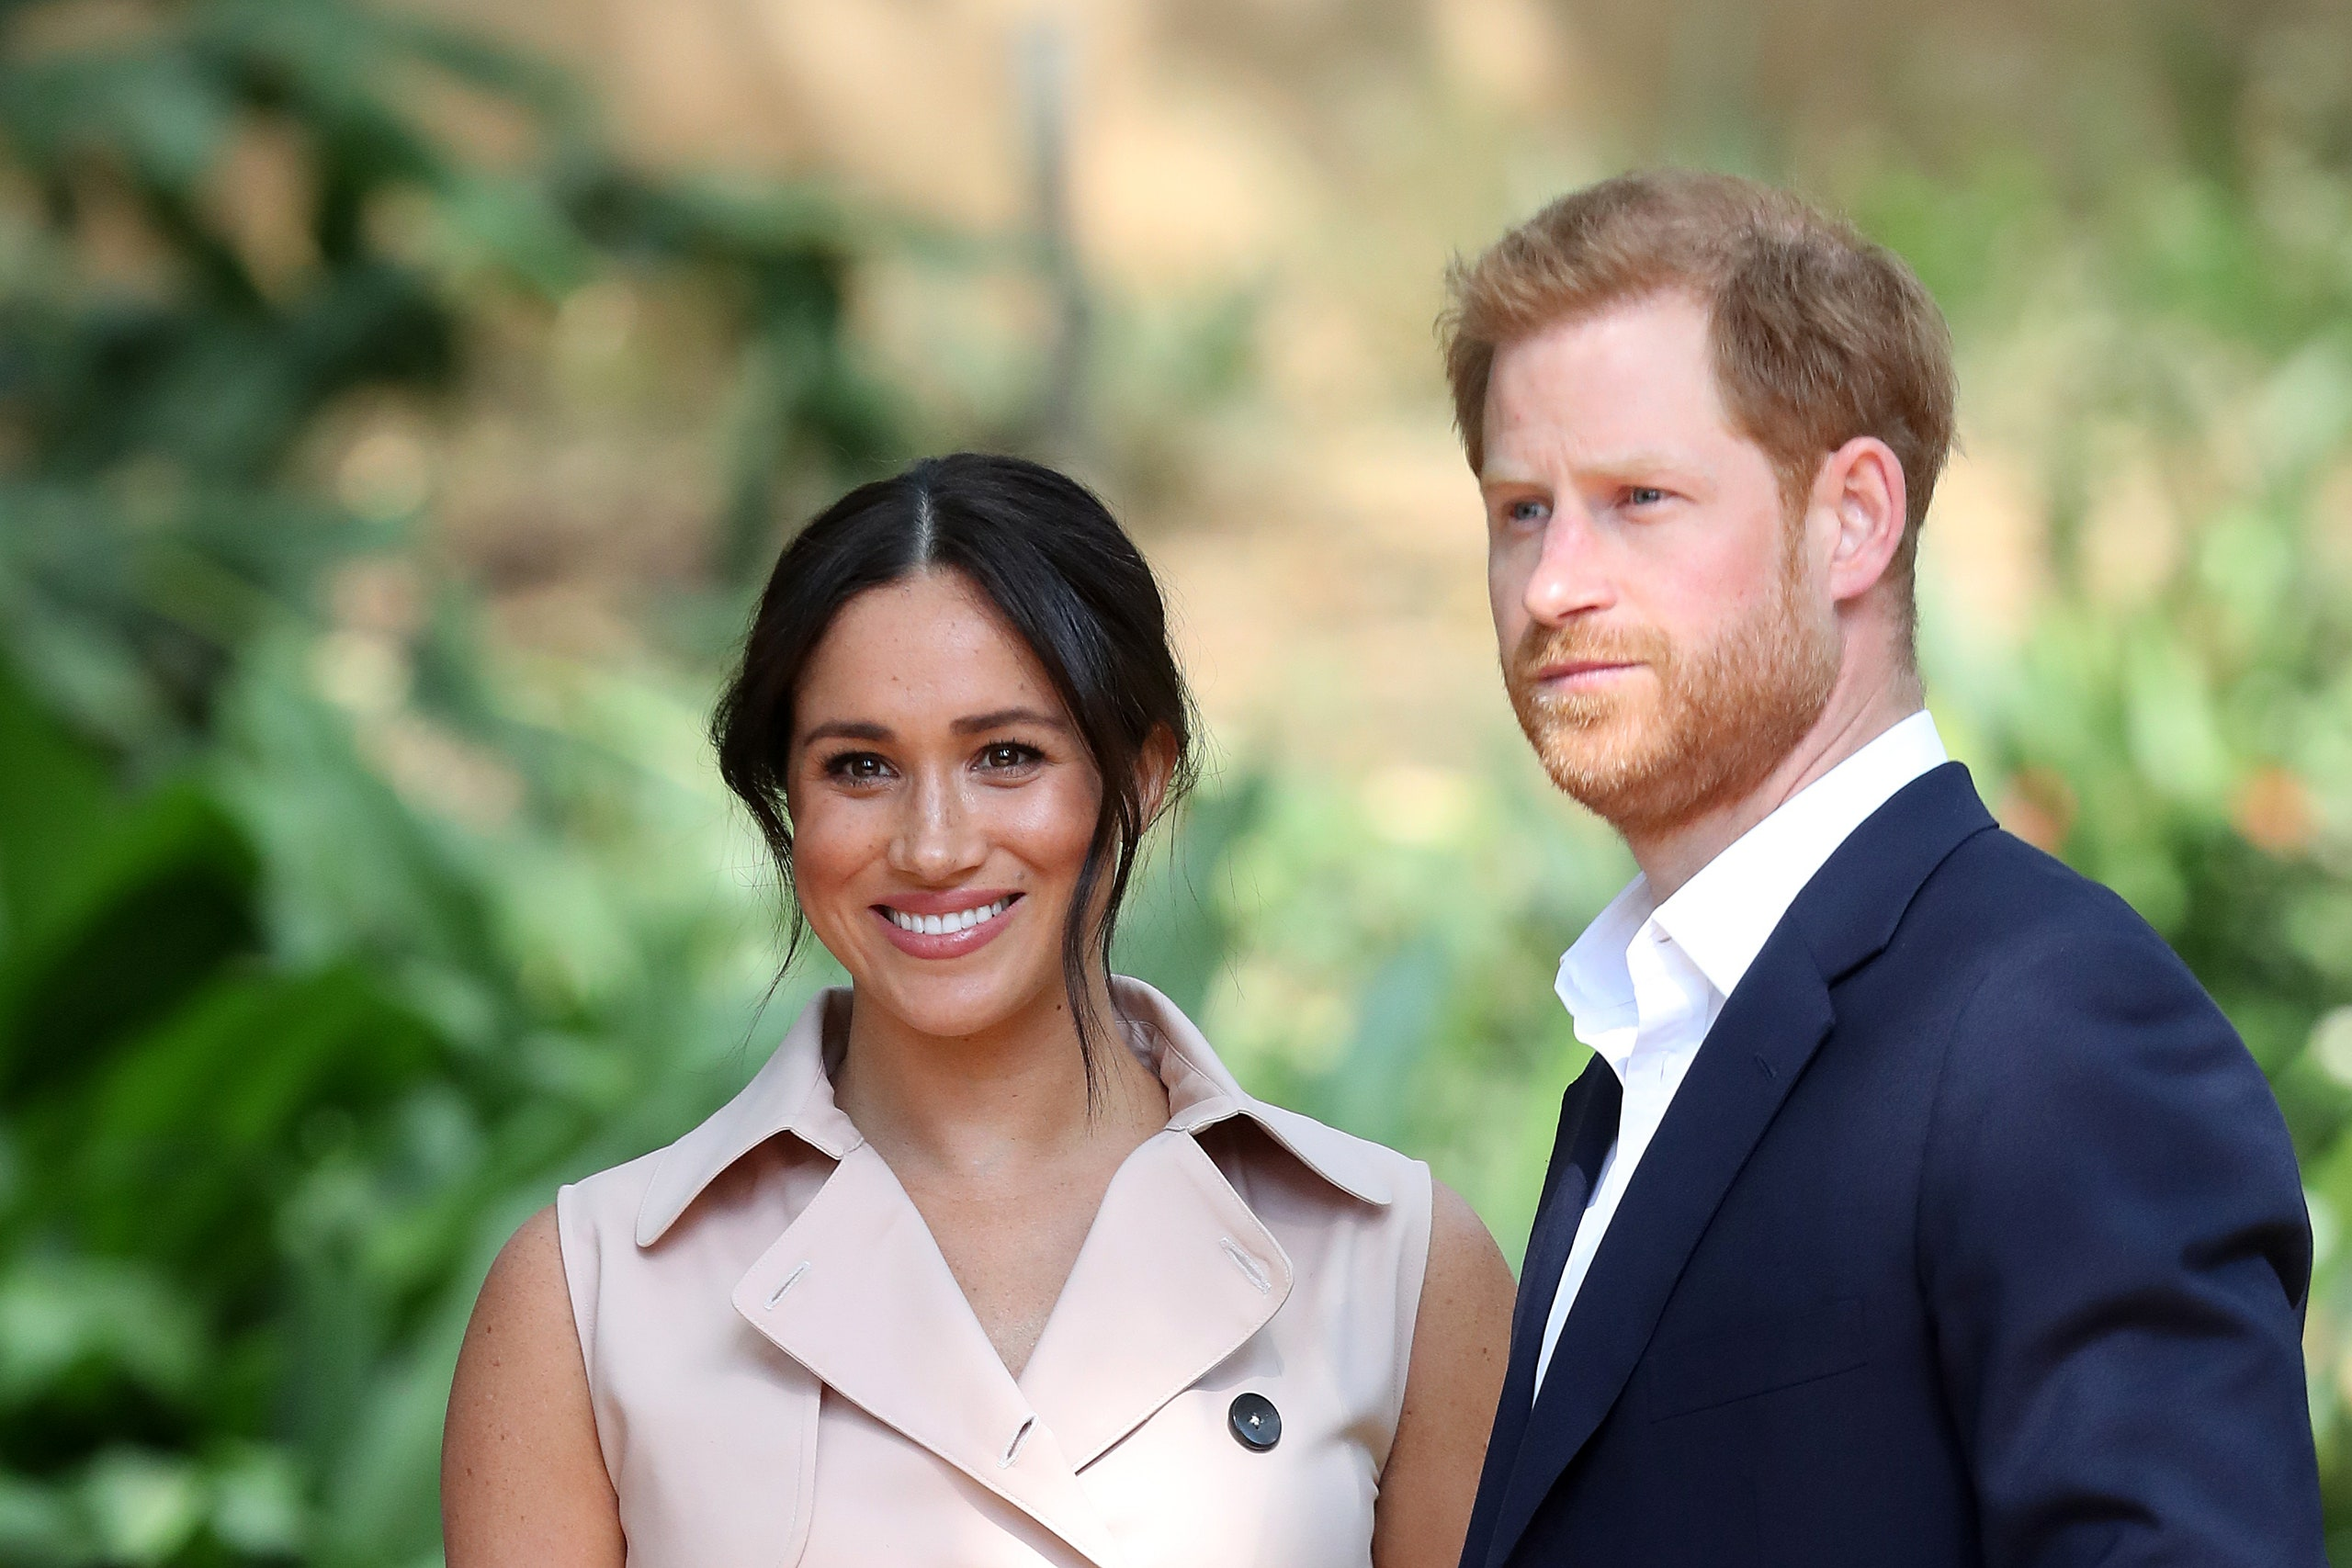 prince-harry-step-down-i-am-laycon-breaks-streaming-record-willian-racial-abuse-latest-news-global-world-stories-saturday-february-2021-style-rave